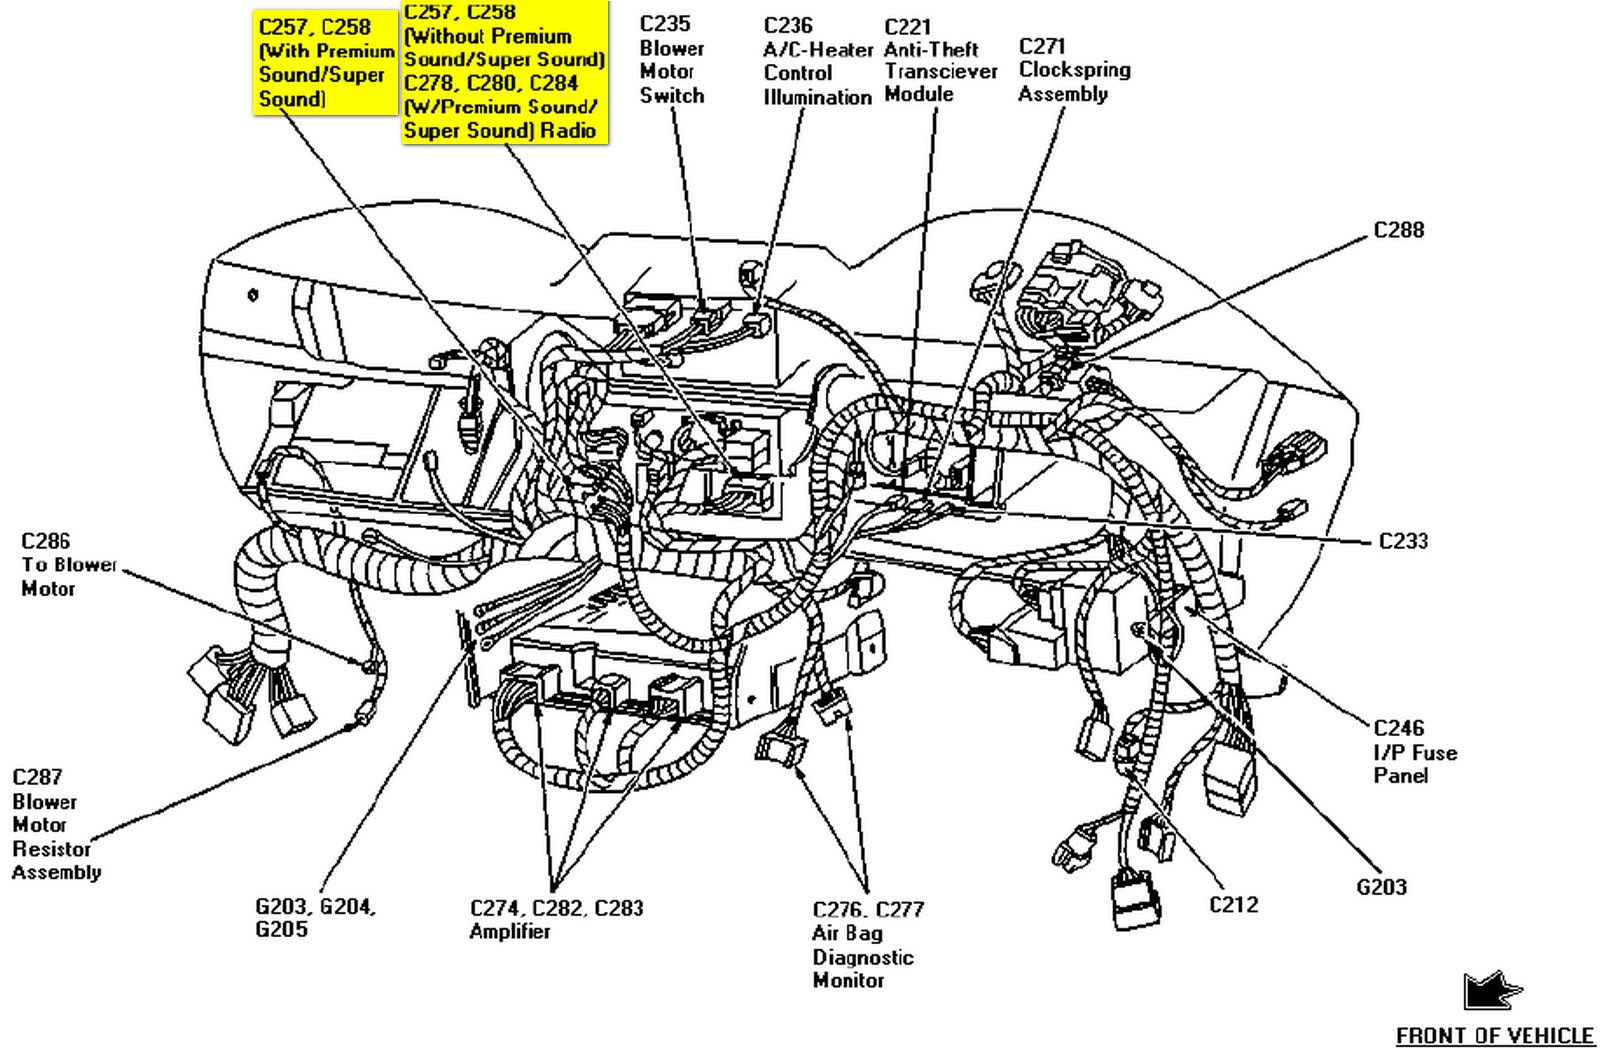 Ford Mustang Mach 460 Wiring Diagram